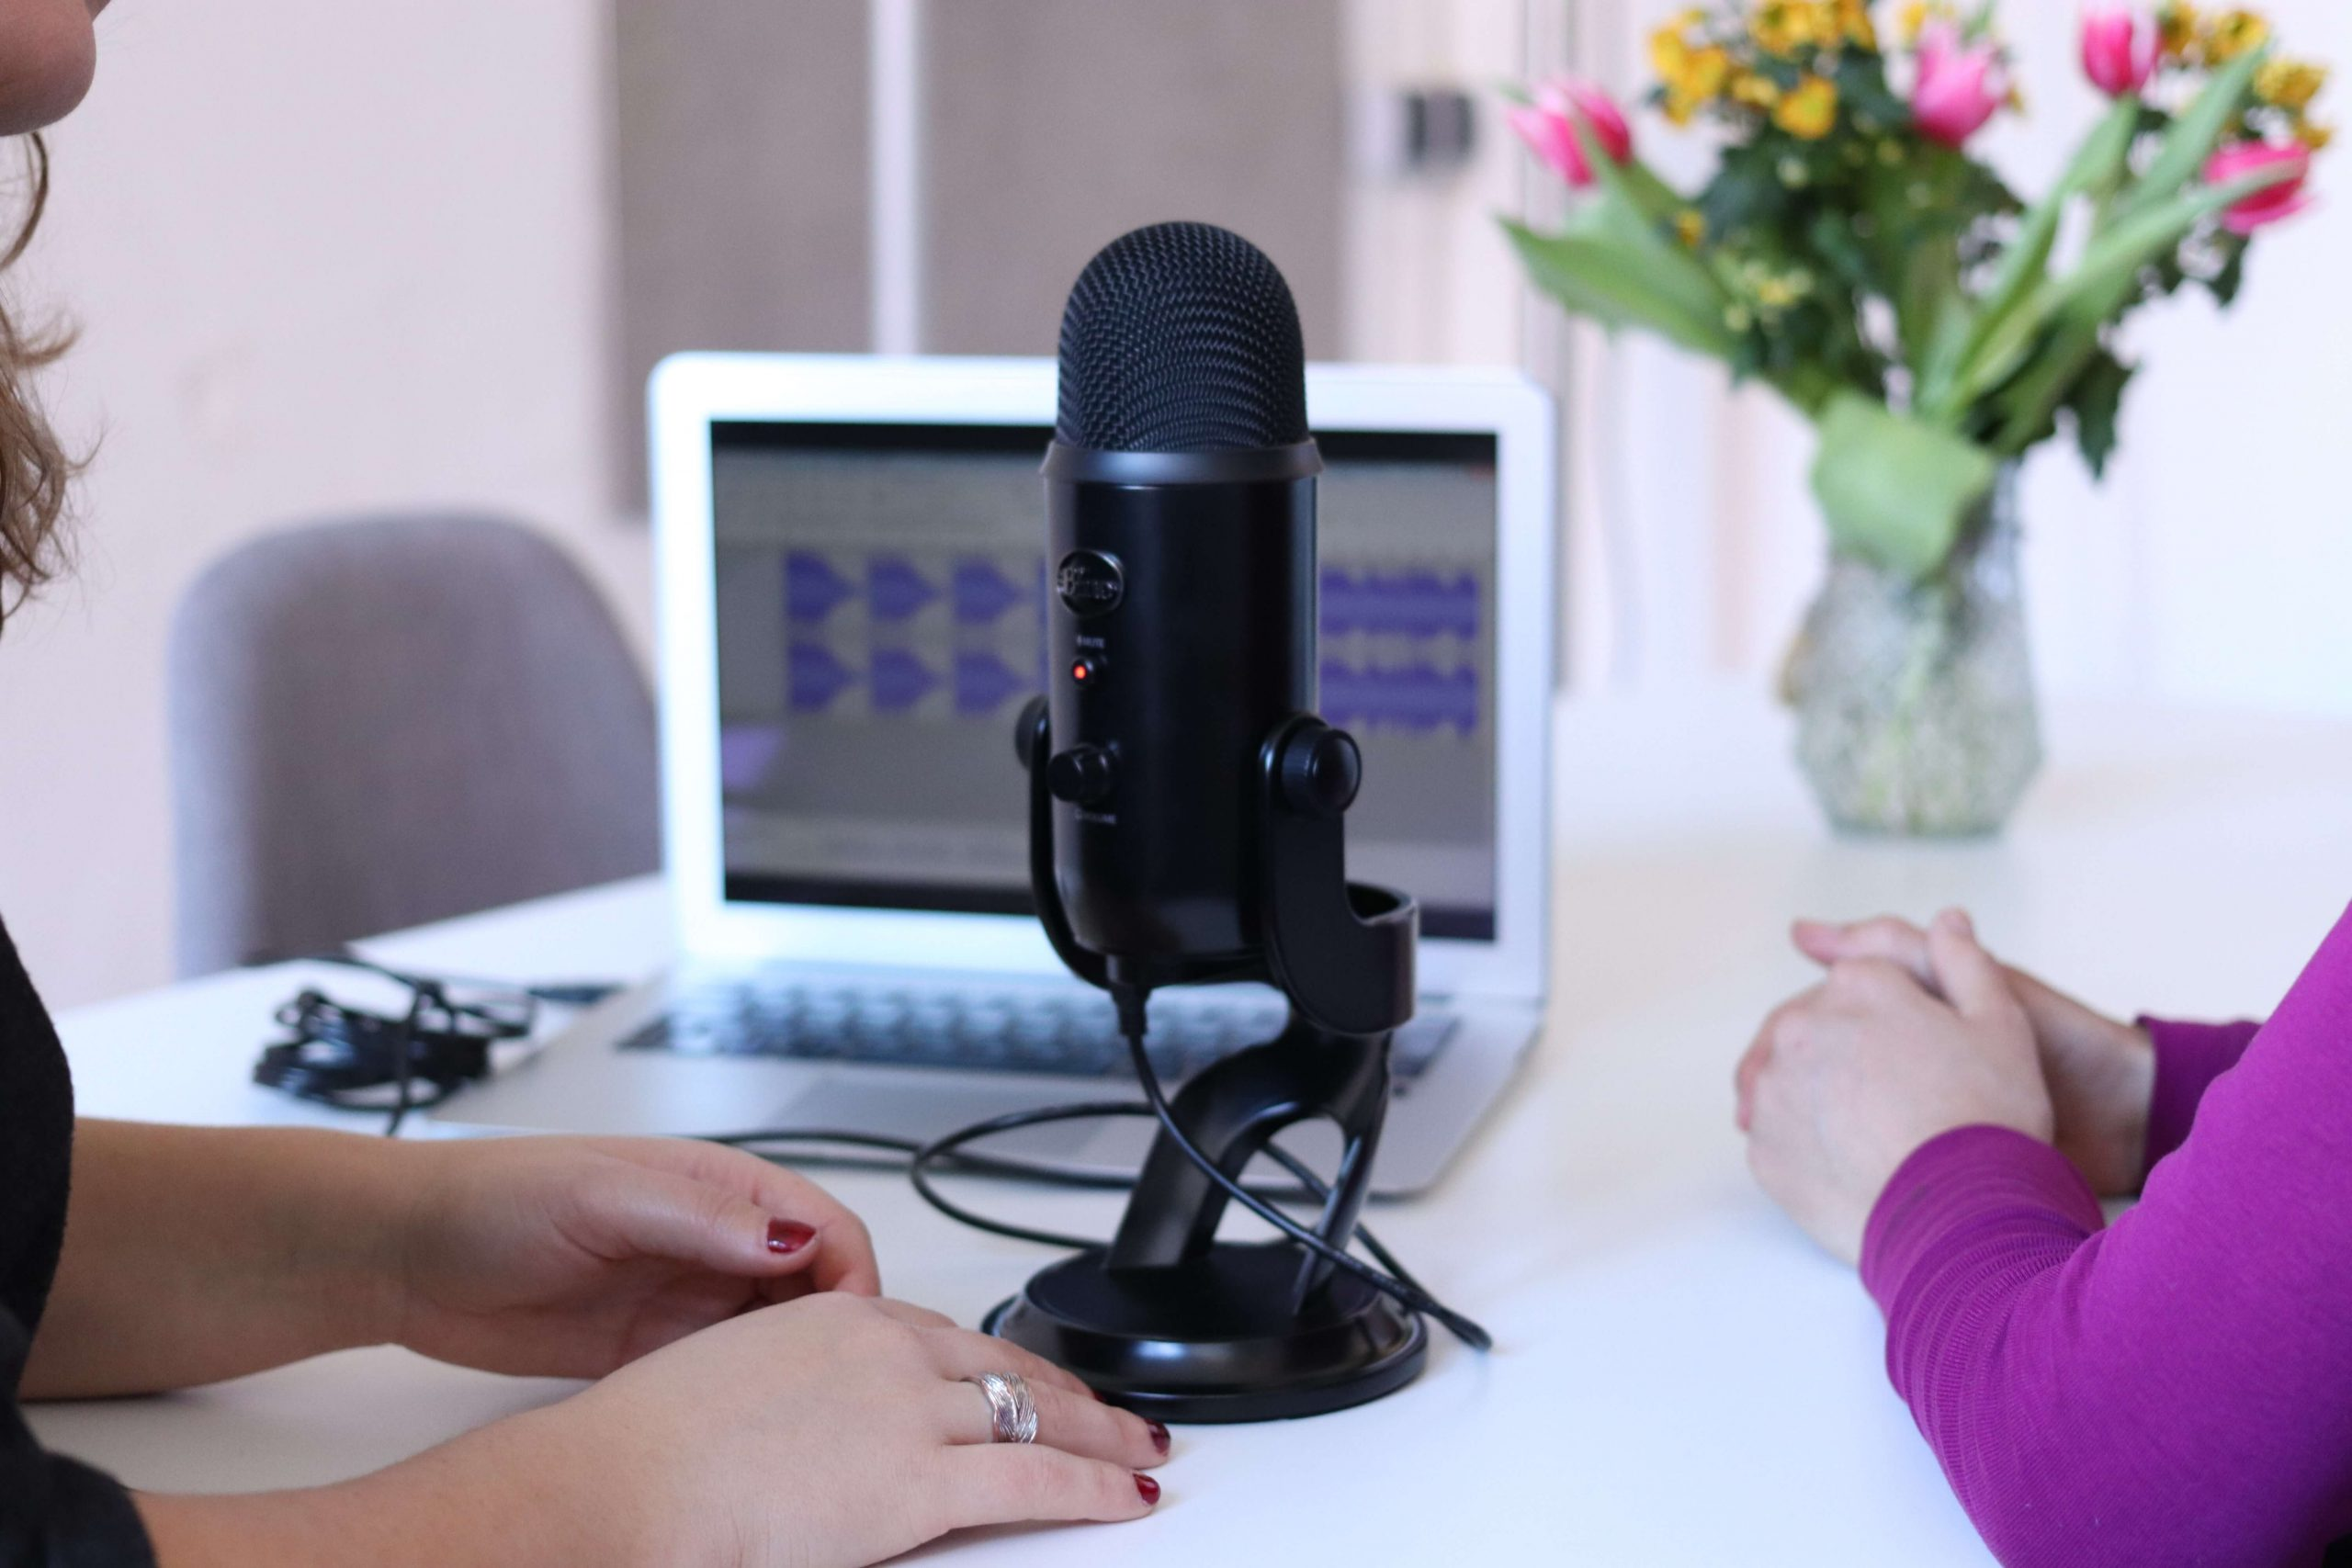 Distance from mic: How to Make Blue Yeti Sound Better